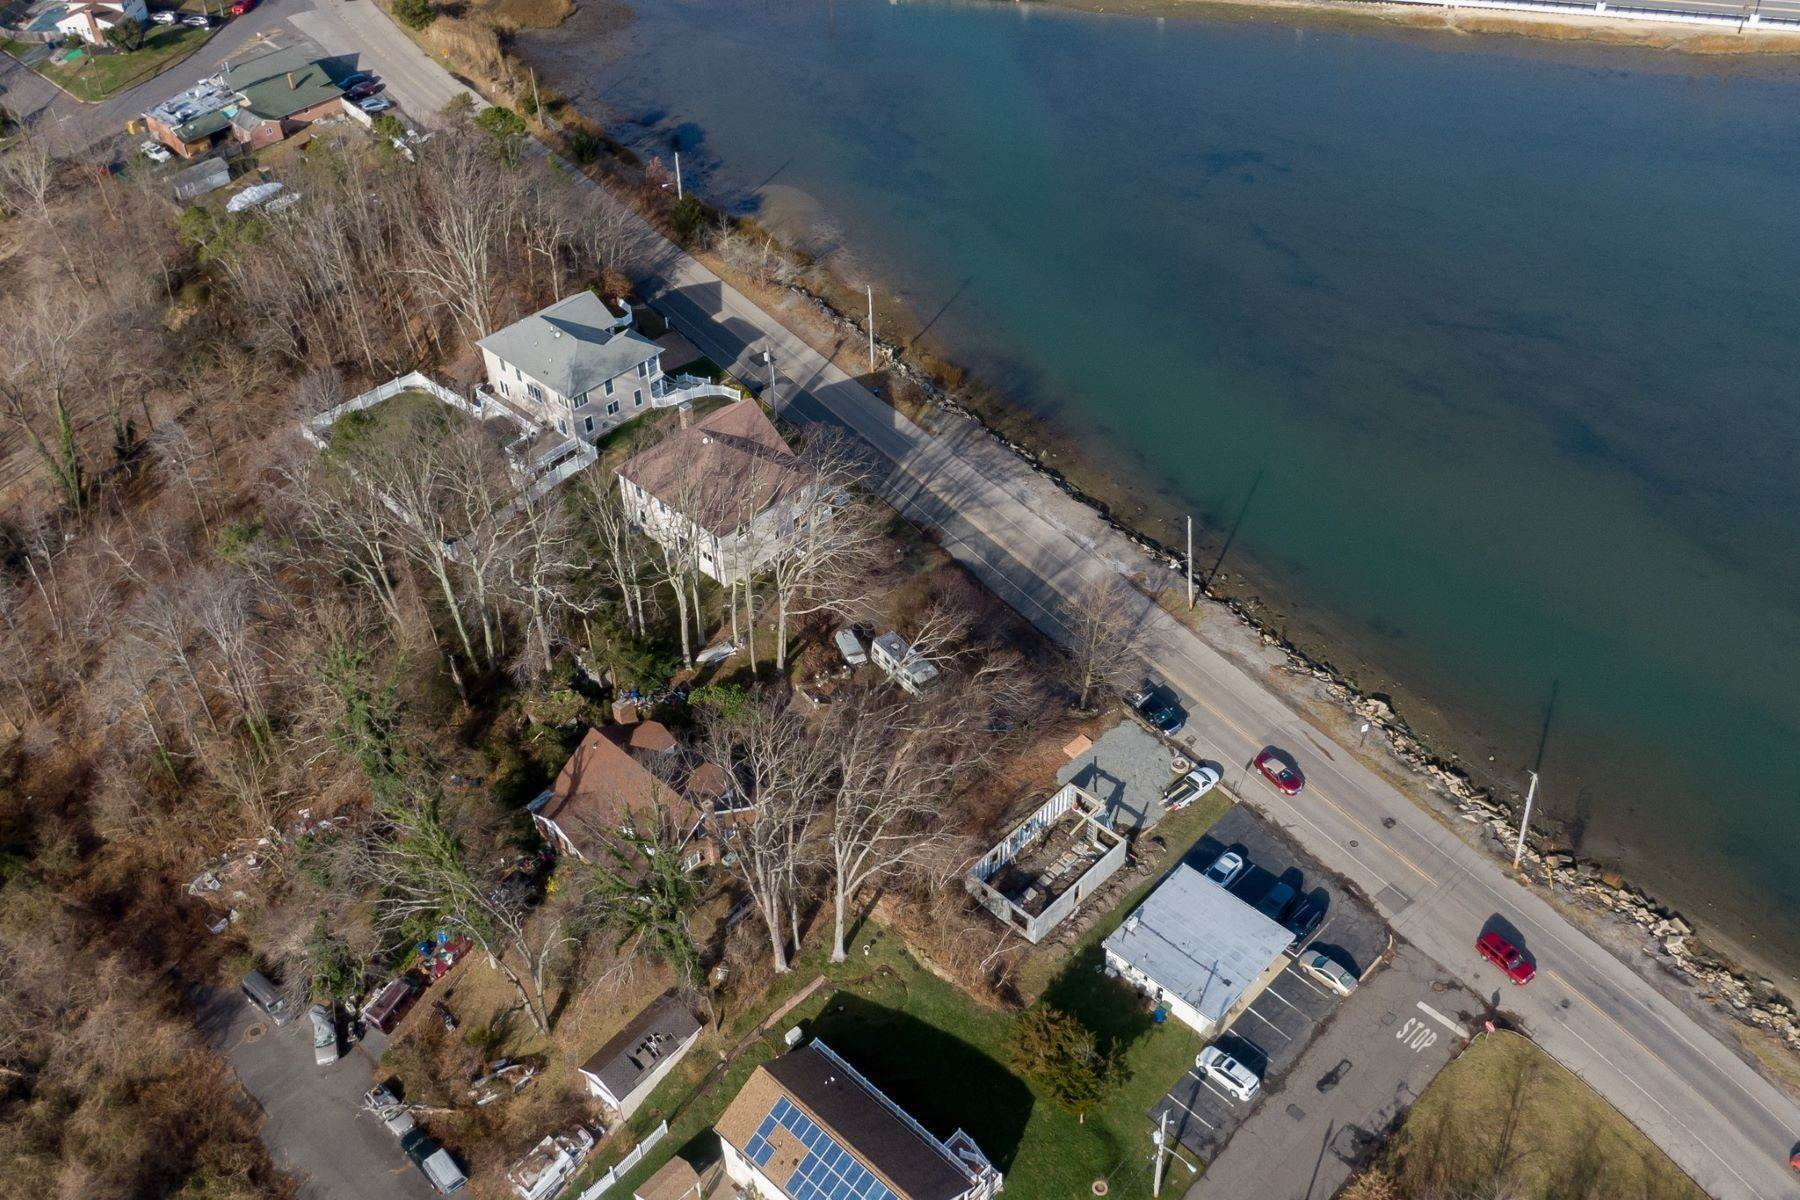 17. Single Family Homes for Sale at NEW Waterfront home to be built in desirable Shark River Hills 25 S Riverside Dr Neptune, New Jersey 07753 United States